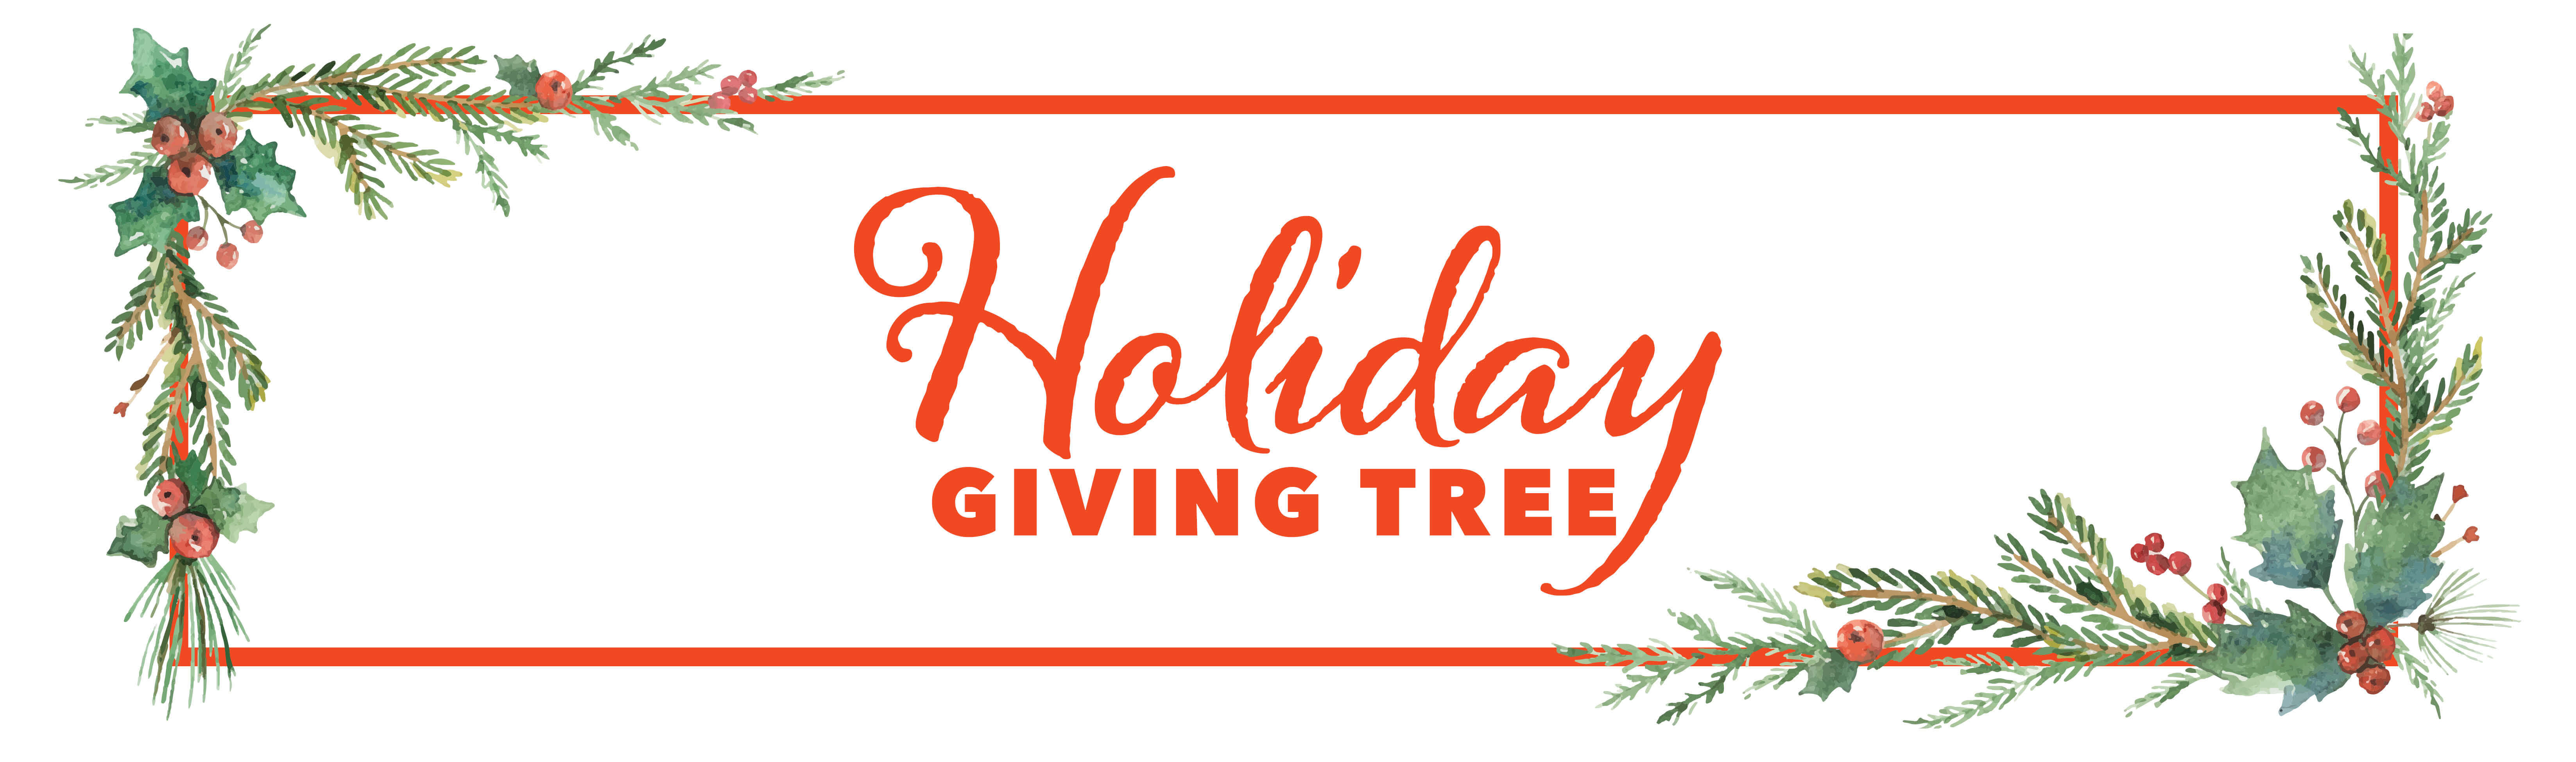 """Text reads """"Holiday Giving Tree"""" with festive botanical border"""